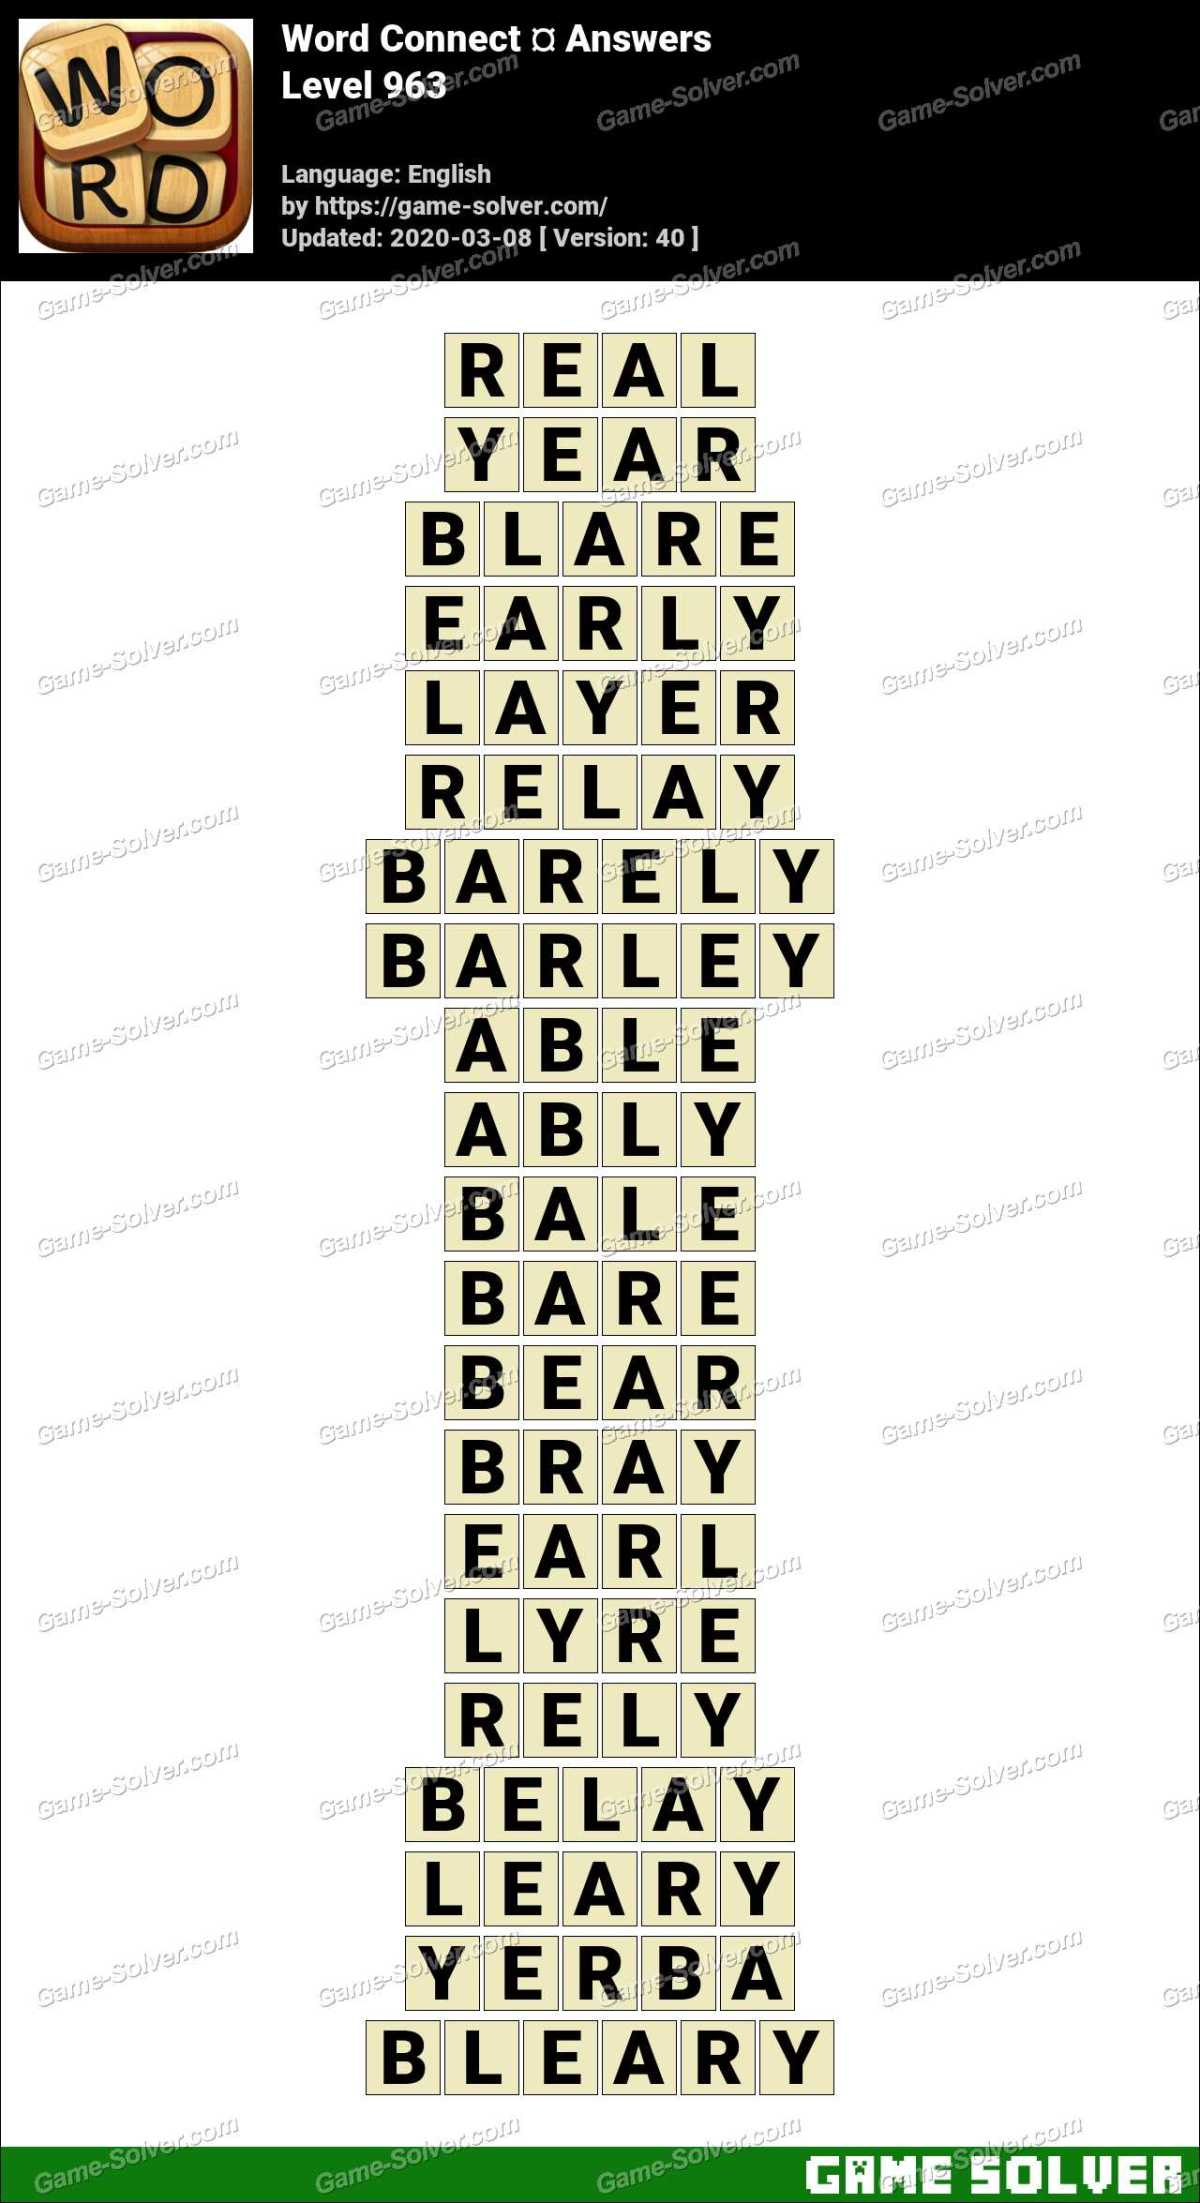 Word Connect Level 963 Answers